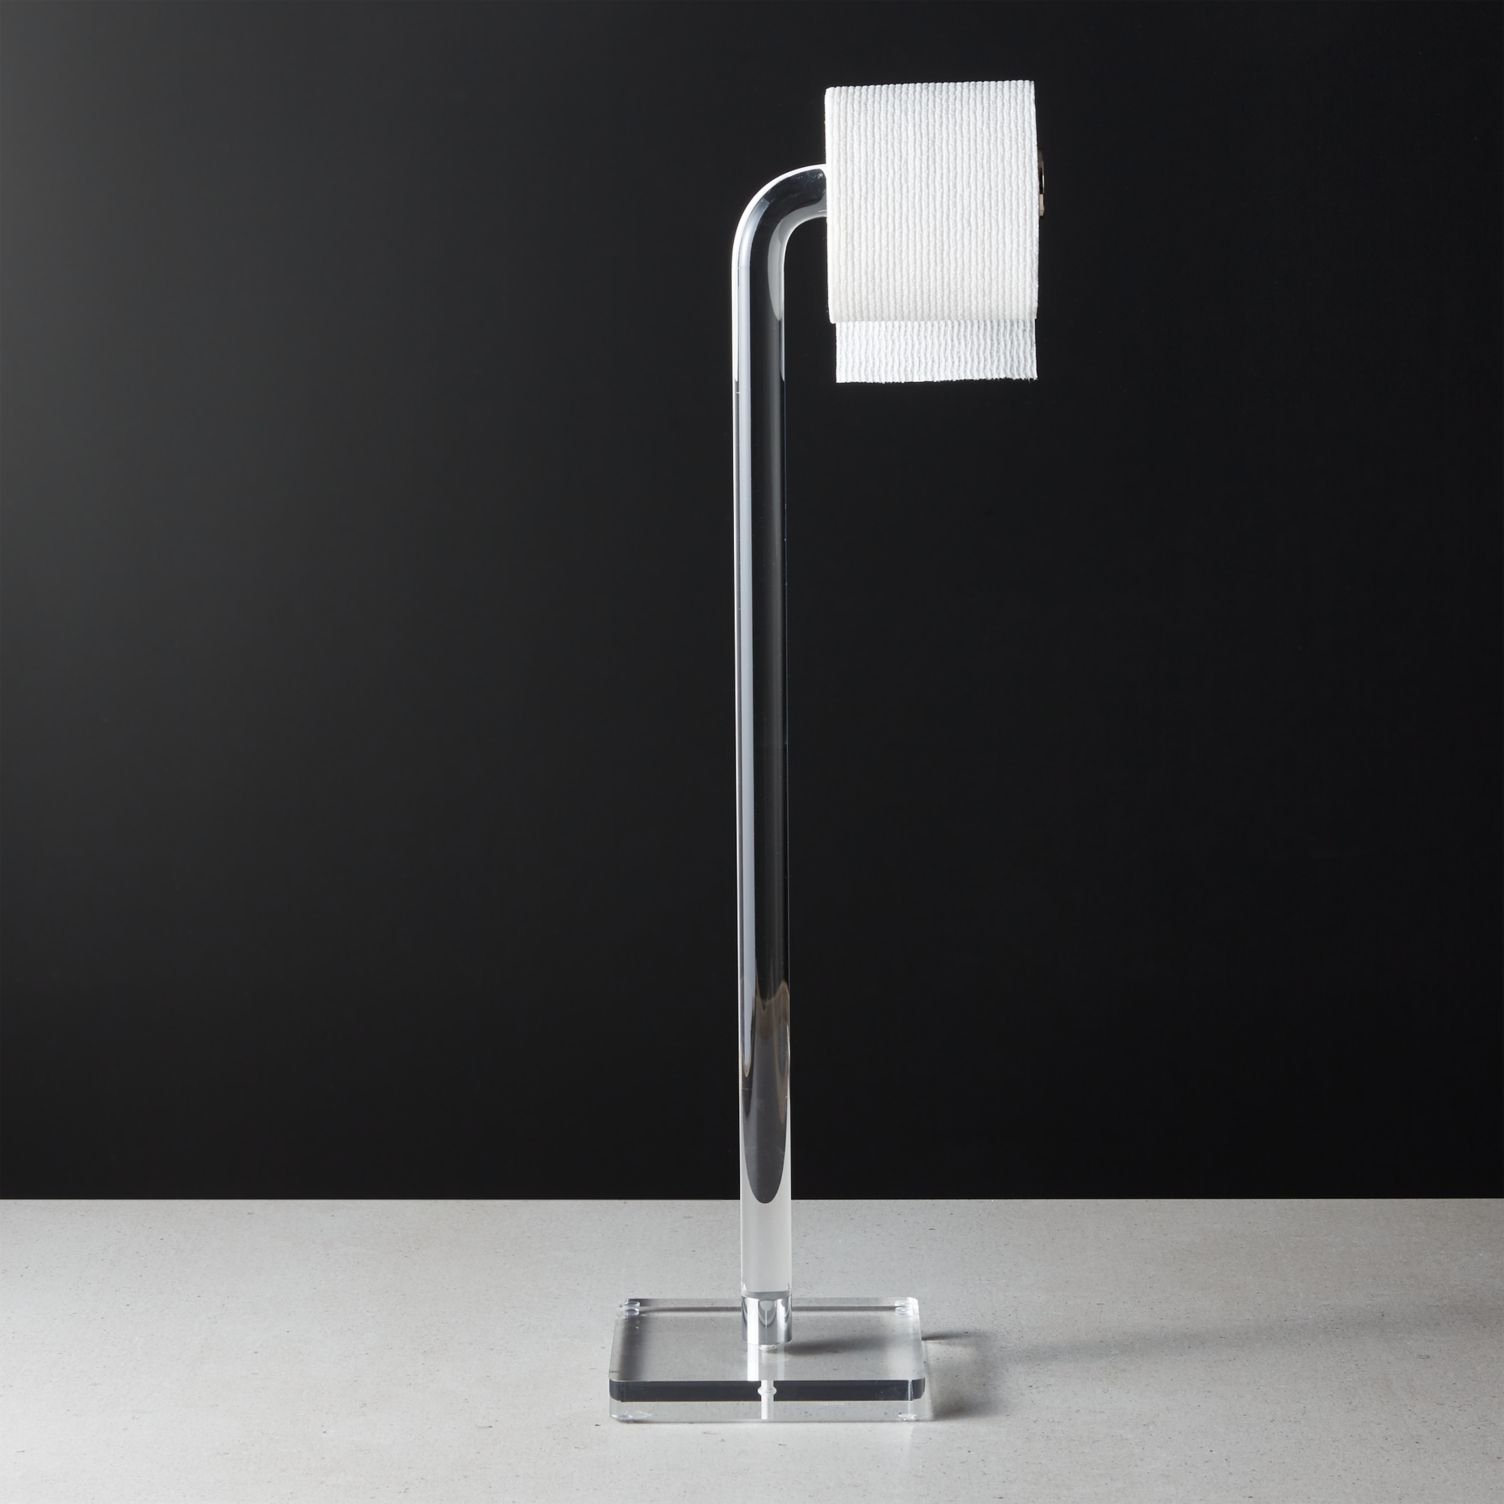 Standing acrylic toilet paper holder